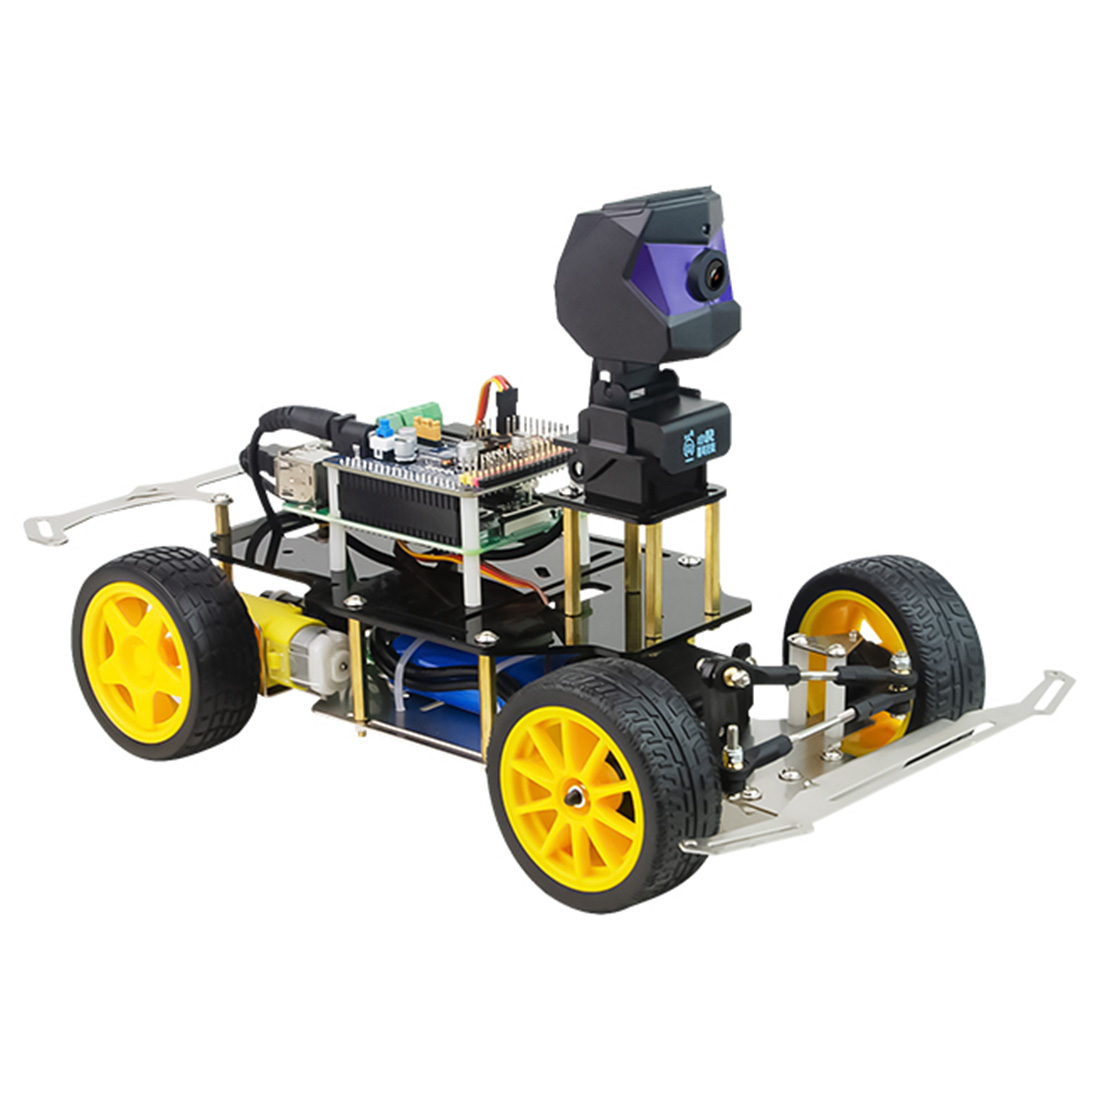 Donkey Car Smart AI Line Follower Programmable Robot Opensource DIY Self Driving Platform For Raspberry Pi RC Car